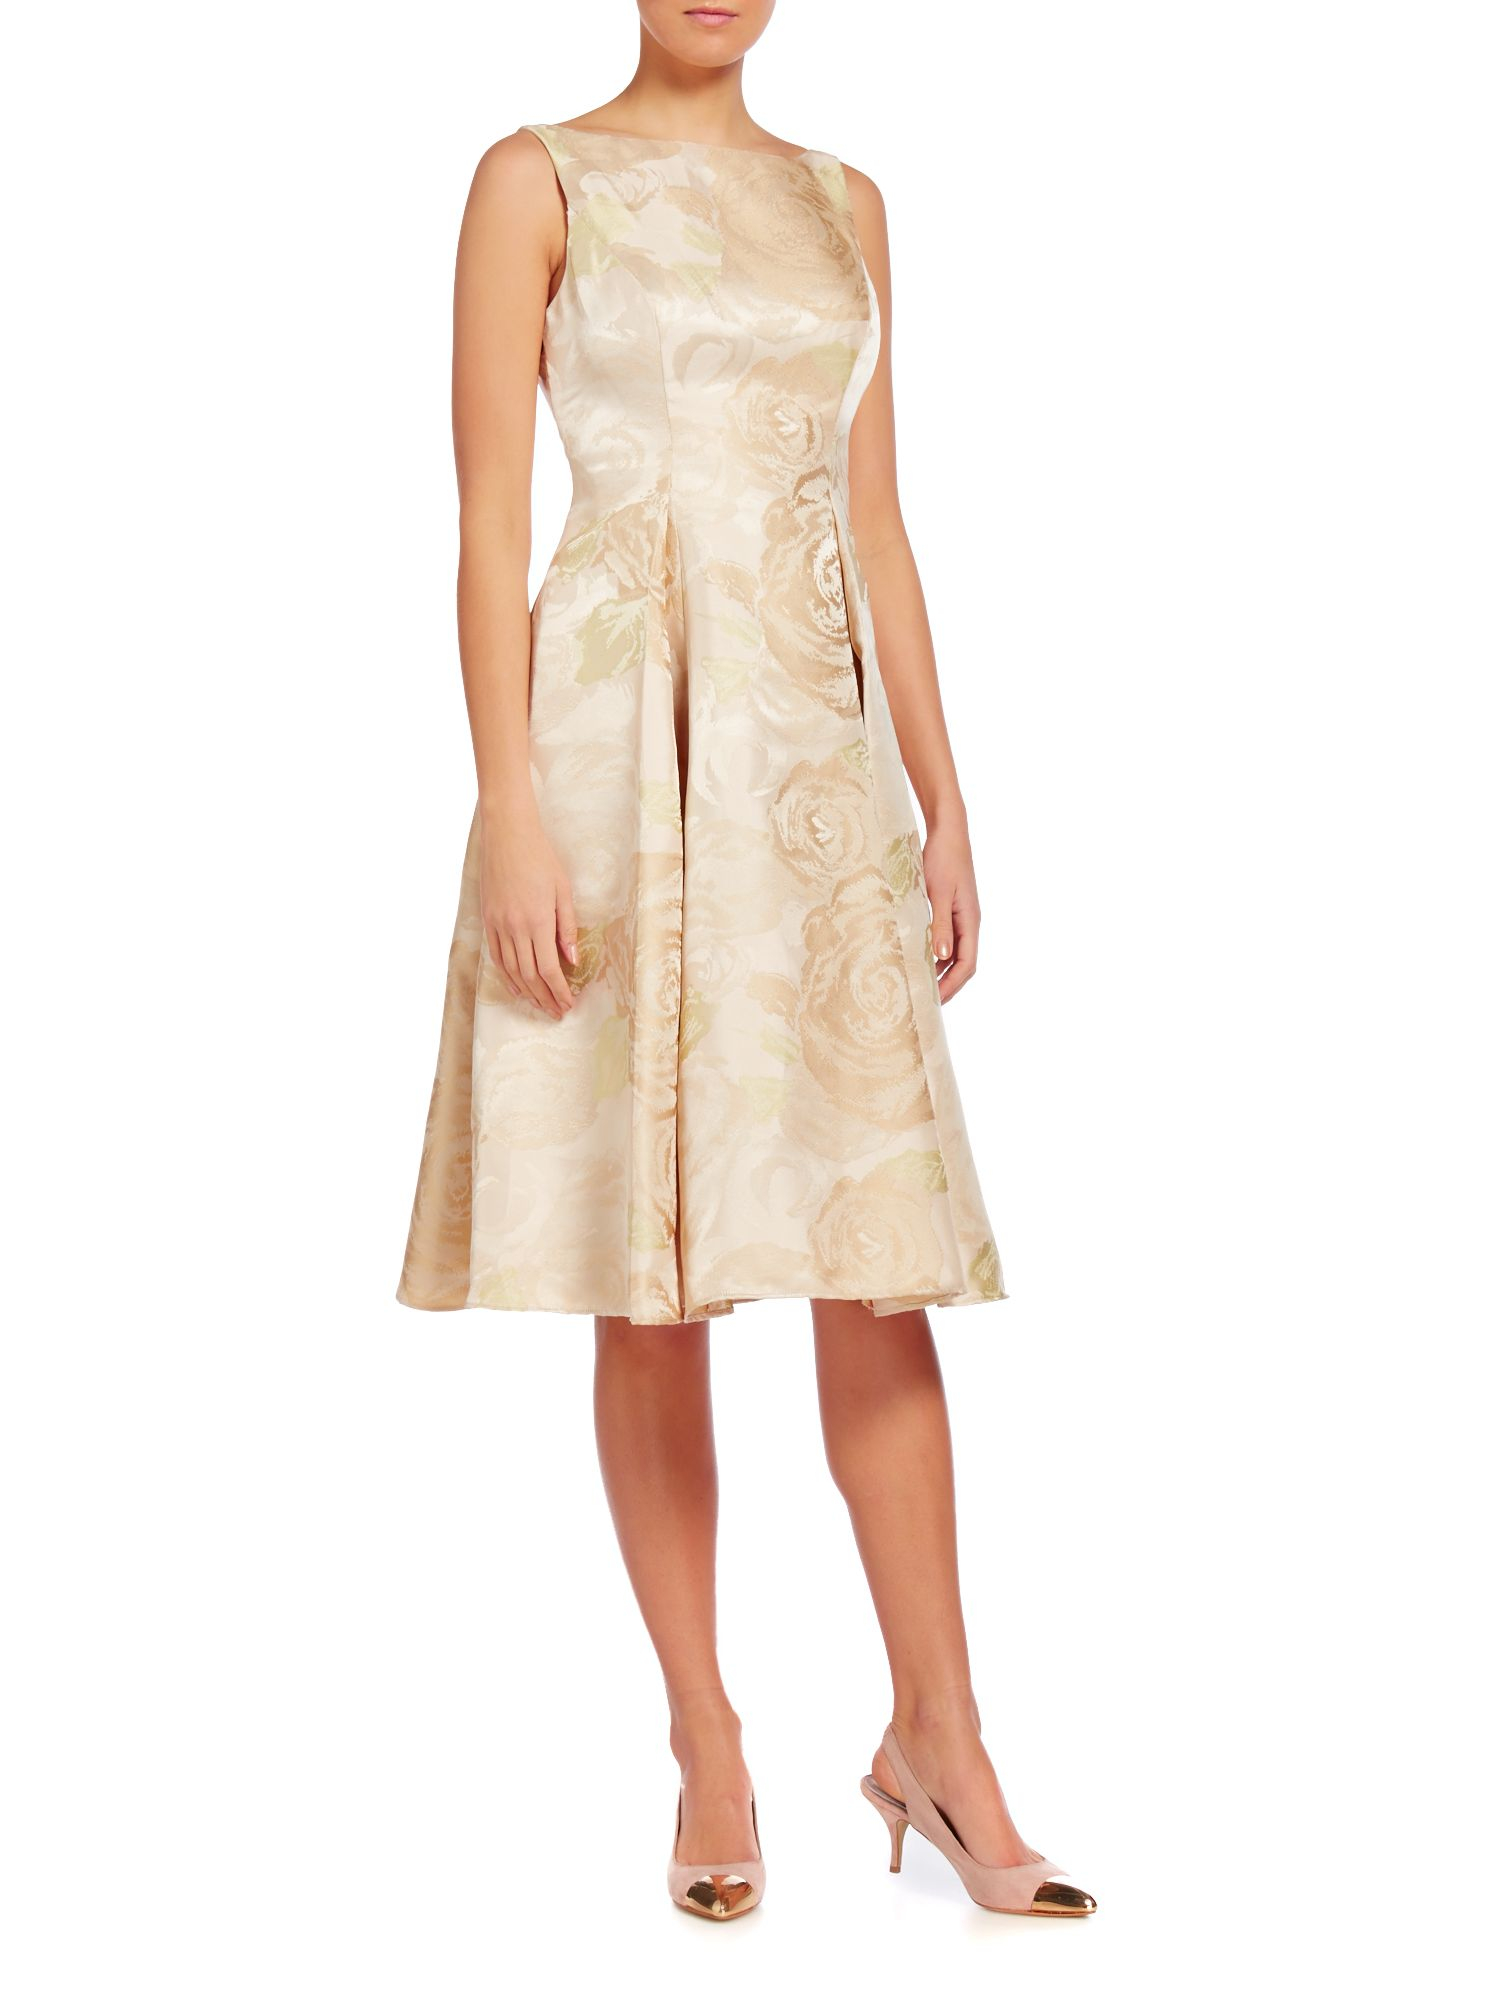 Adrianna Papell Sleeves Midi Press With Floral Jacquard